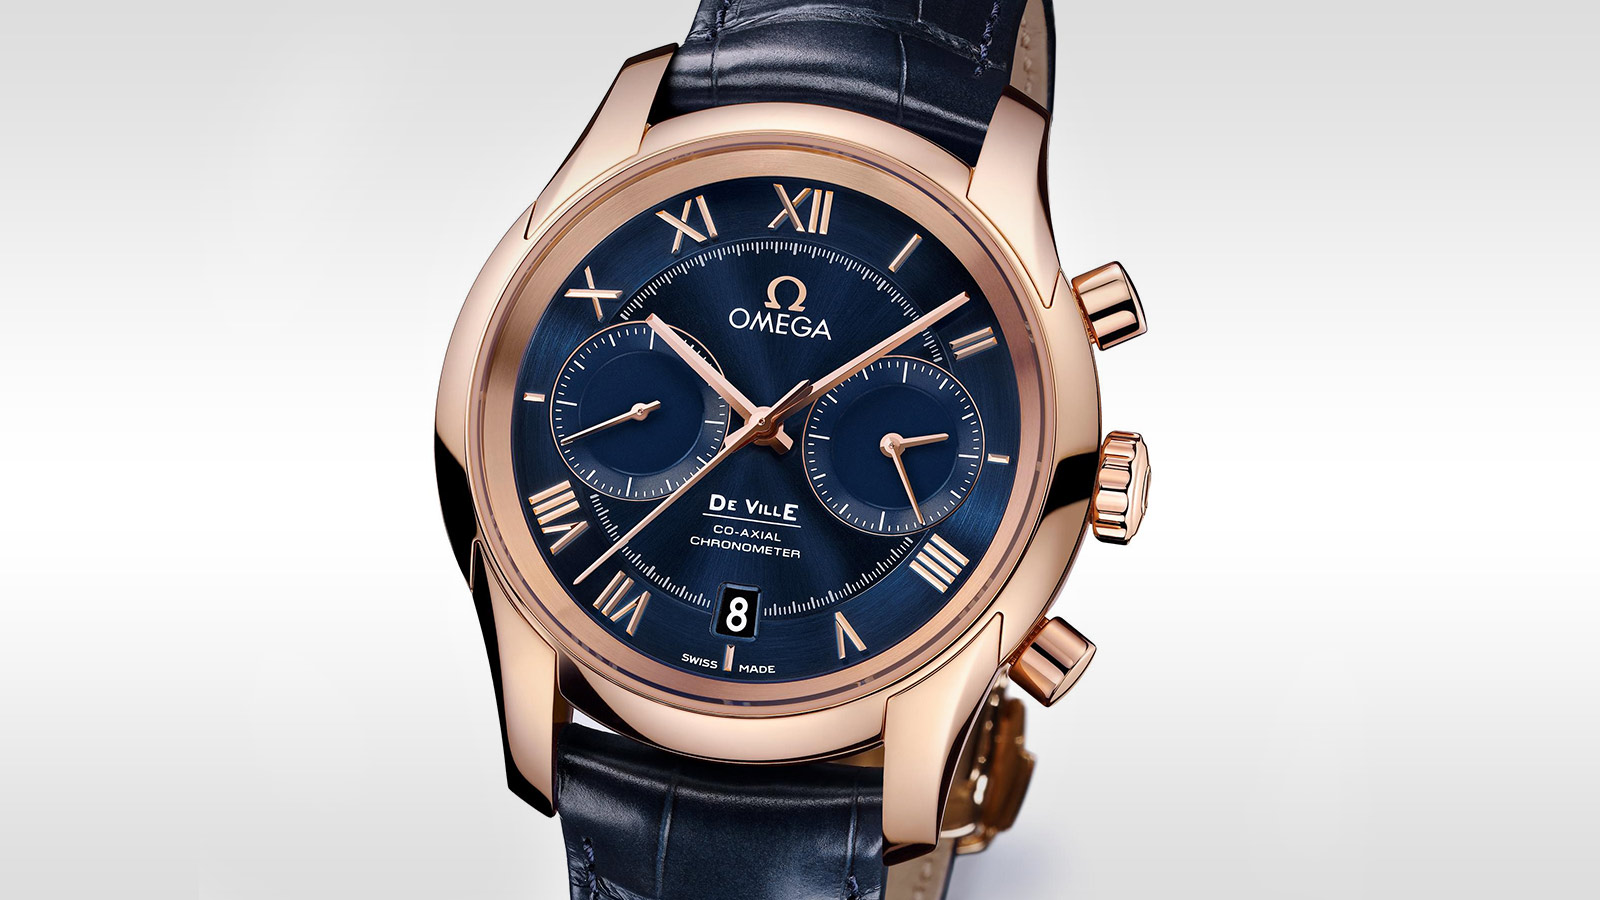 De Ville GENTS' COLLECTION De Ville Omega Co‑Axial Chronograph 42 mm - 431.53.42.51.03.001 - View 2